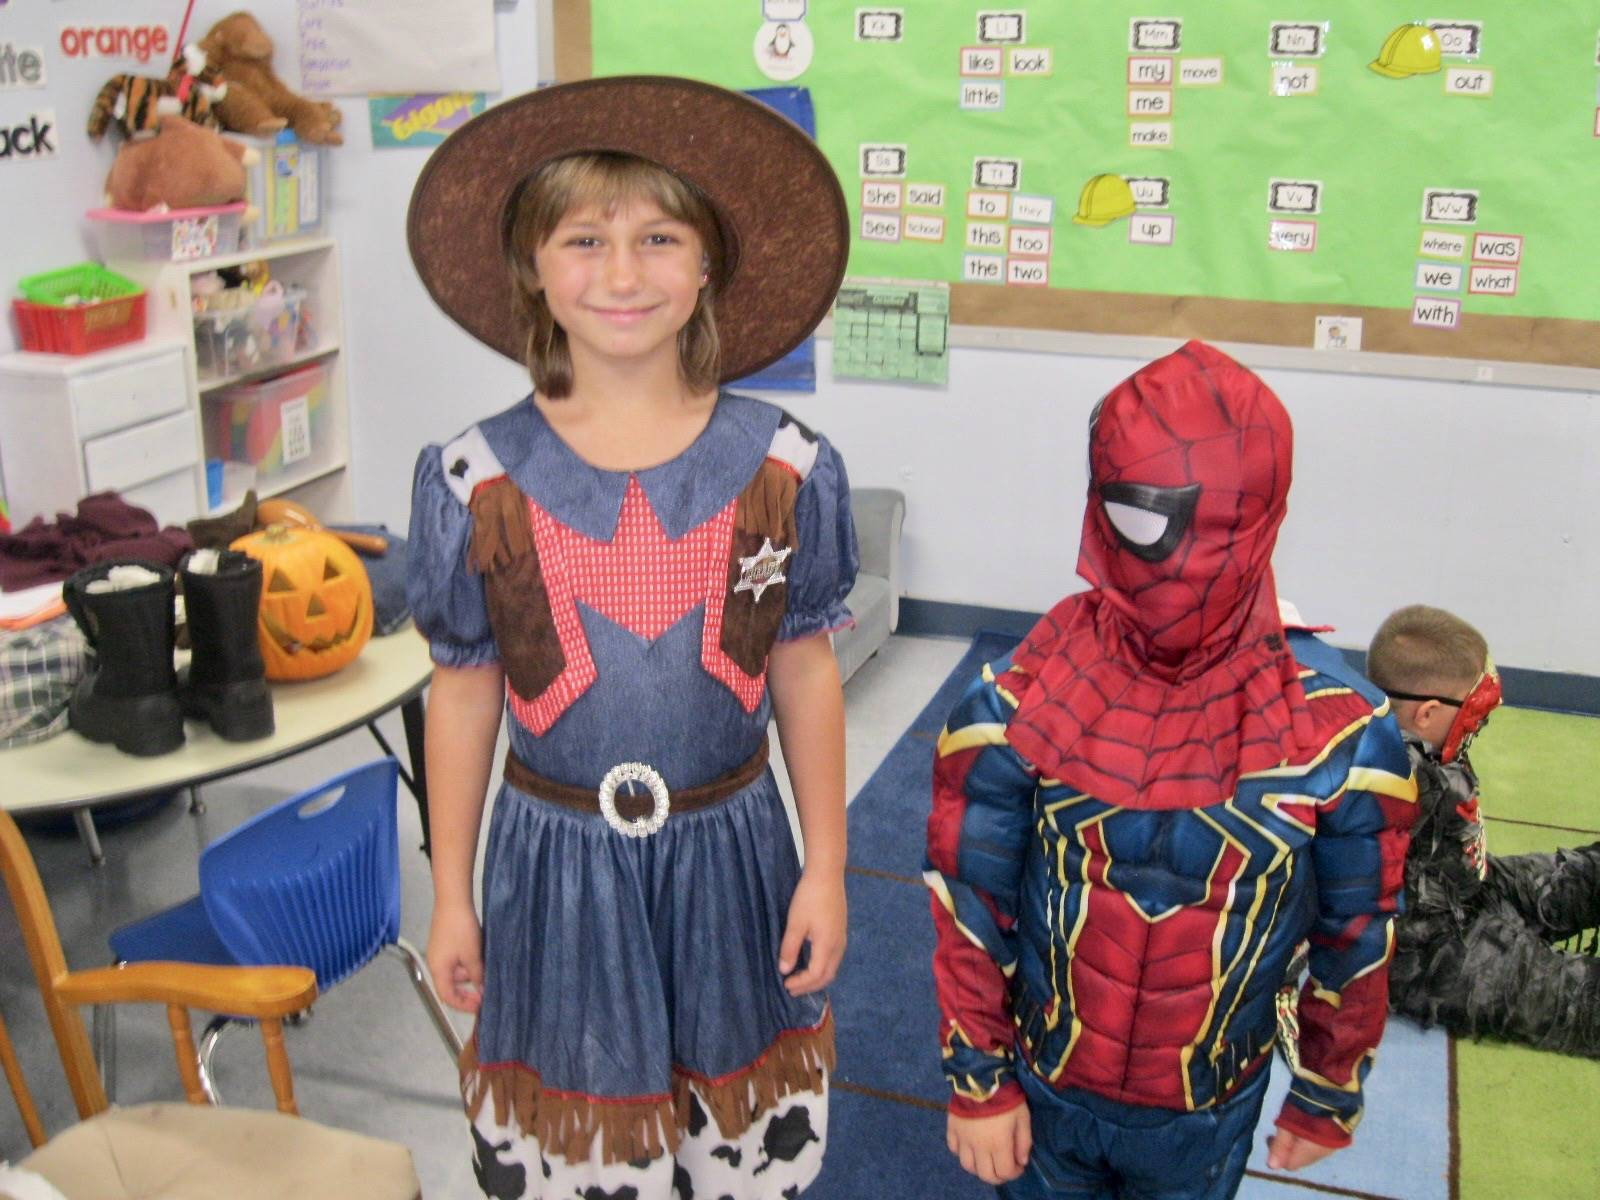 A cowgirl and spiderman